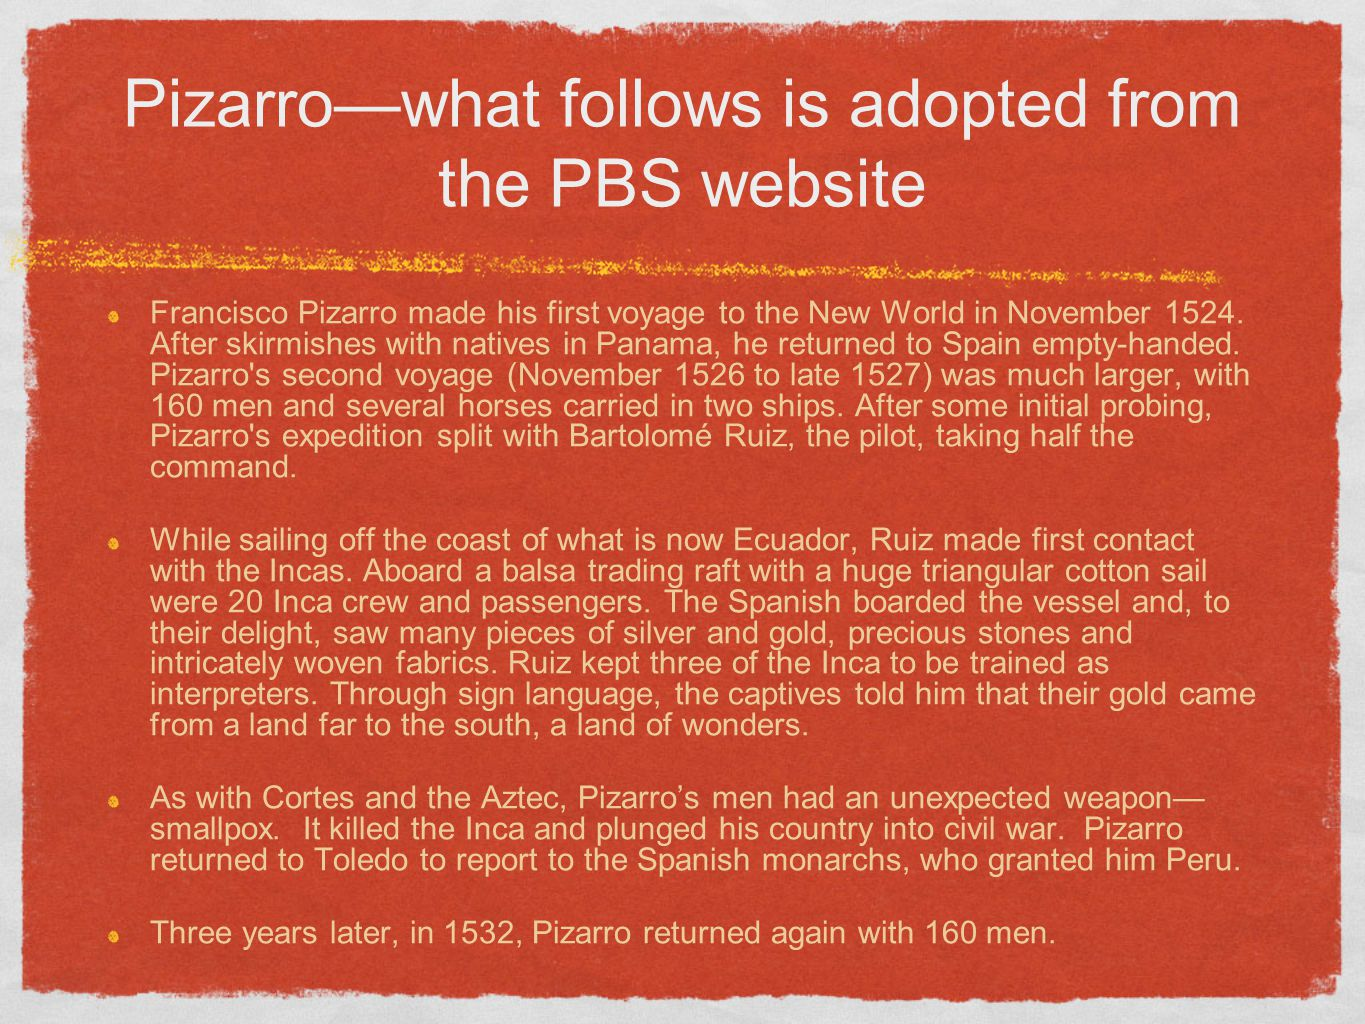 Pizarro—what follows is adopted from the PBS website